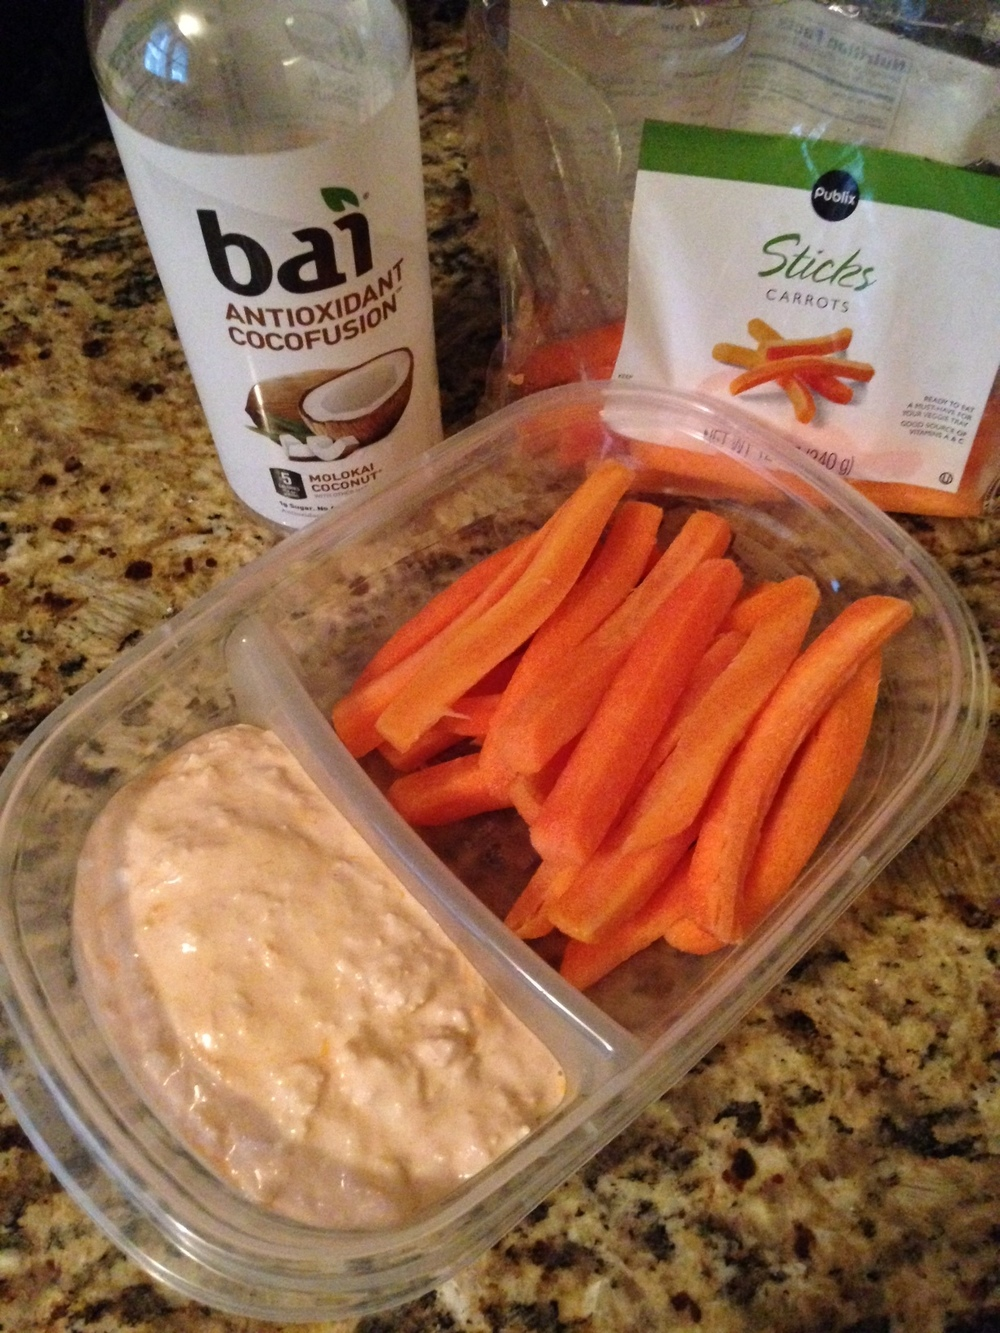 Makes the perfect meal when paired with your favorite raw veggies and Bai drink!